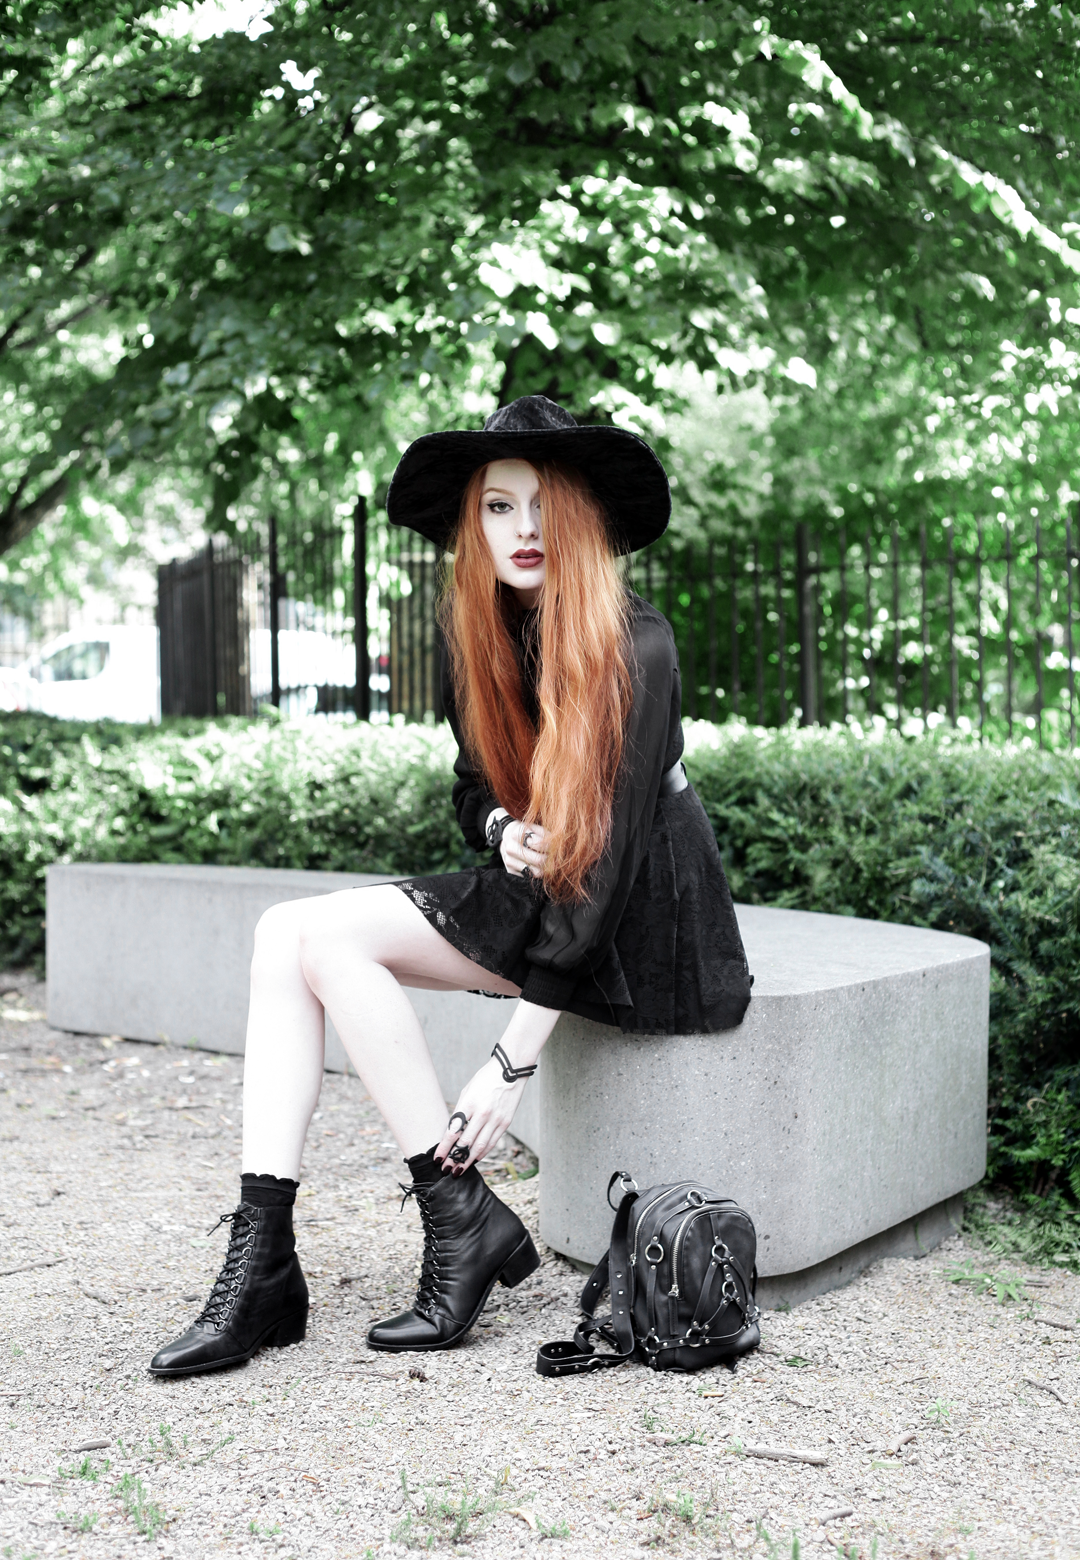 Olivia Emily wears Asos Sheer Shirt, Black Milk Black Lace Skater Dress, Killstar Velvet Witch Brim Hat, Zana Bayne Cincher Waist Belt, Unif Bound Mini Backpack and Asos Ariana Lace Up Boots